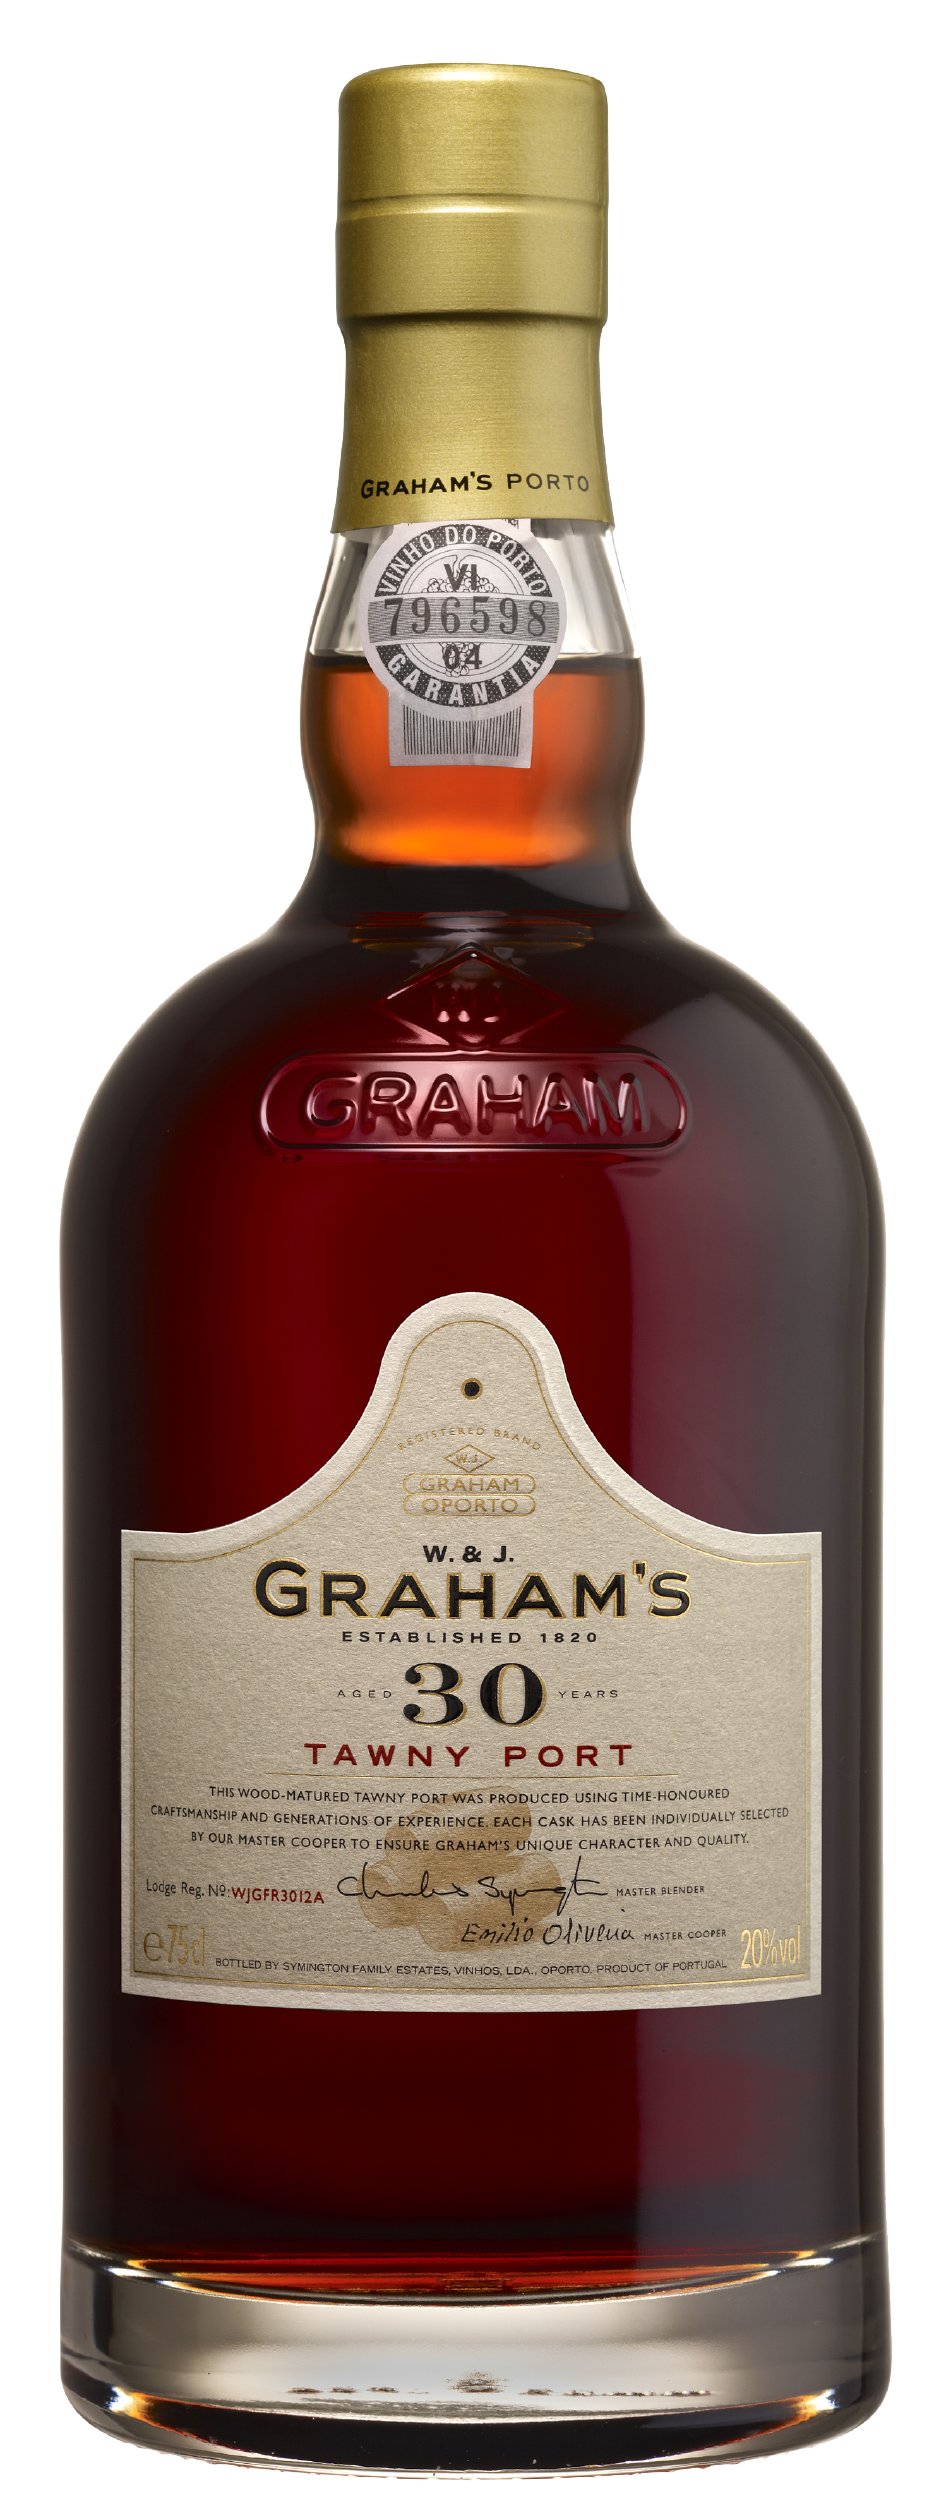 Product Image for GRAHAM'S 30 YEAR OLD TAWNY PORT